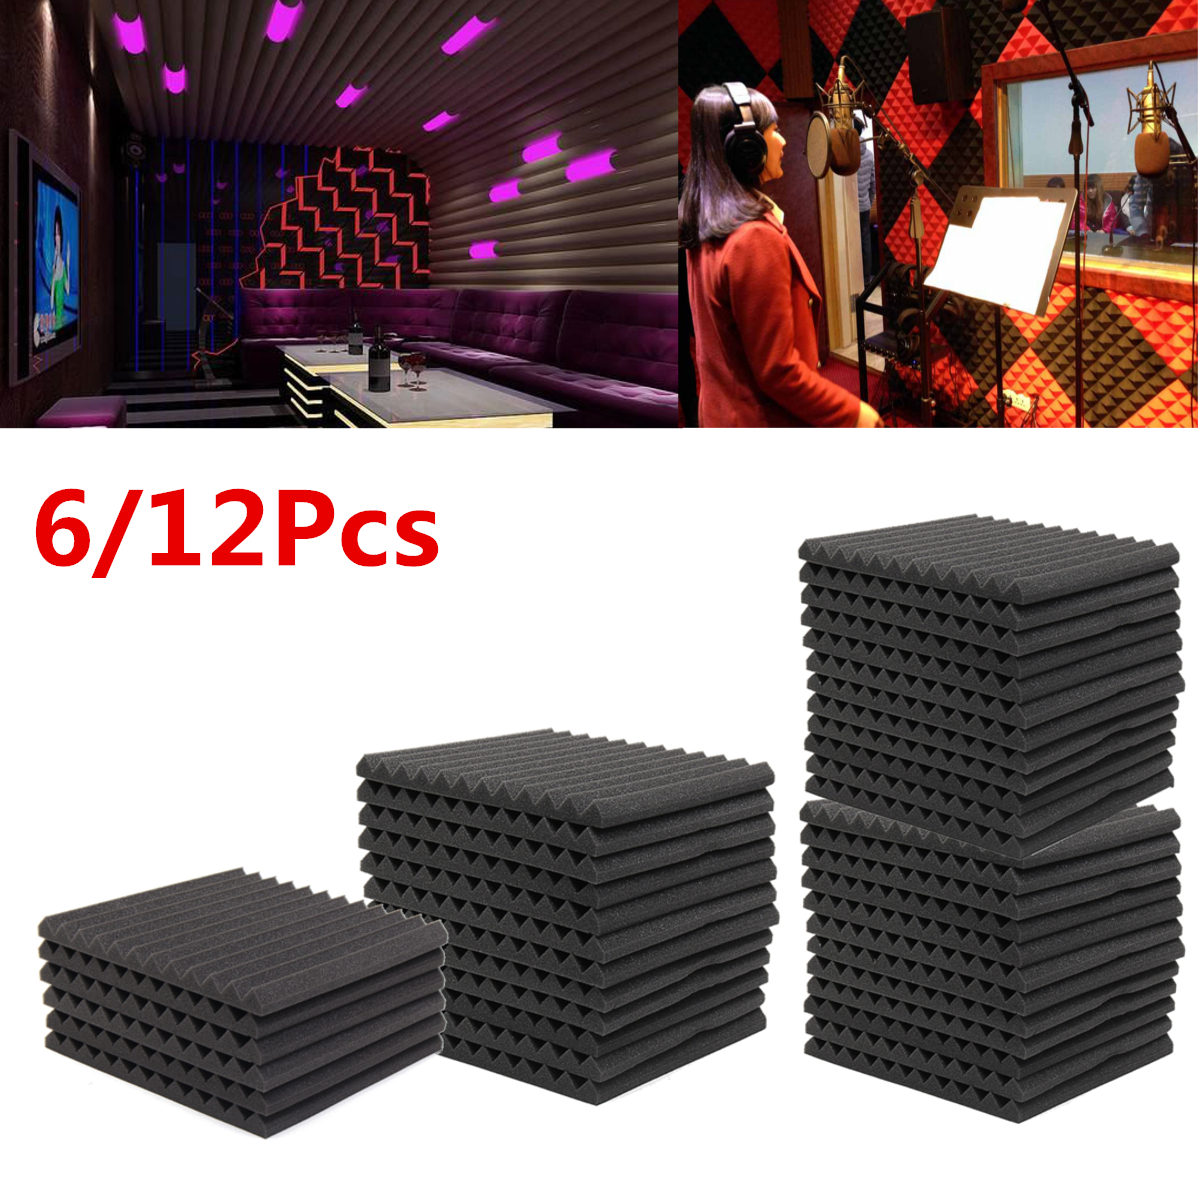 6Pcs/12Pcs Soundproofing Foam Acoustic Foam Studio Absorbing Wedge Foam Tiles Wall Panels For KTV Sound Studio 300*300*25mm